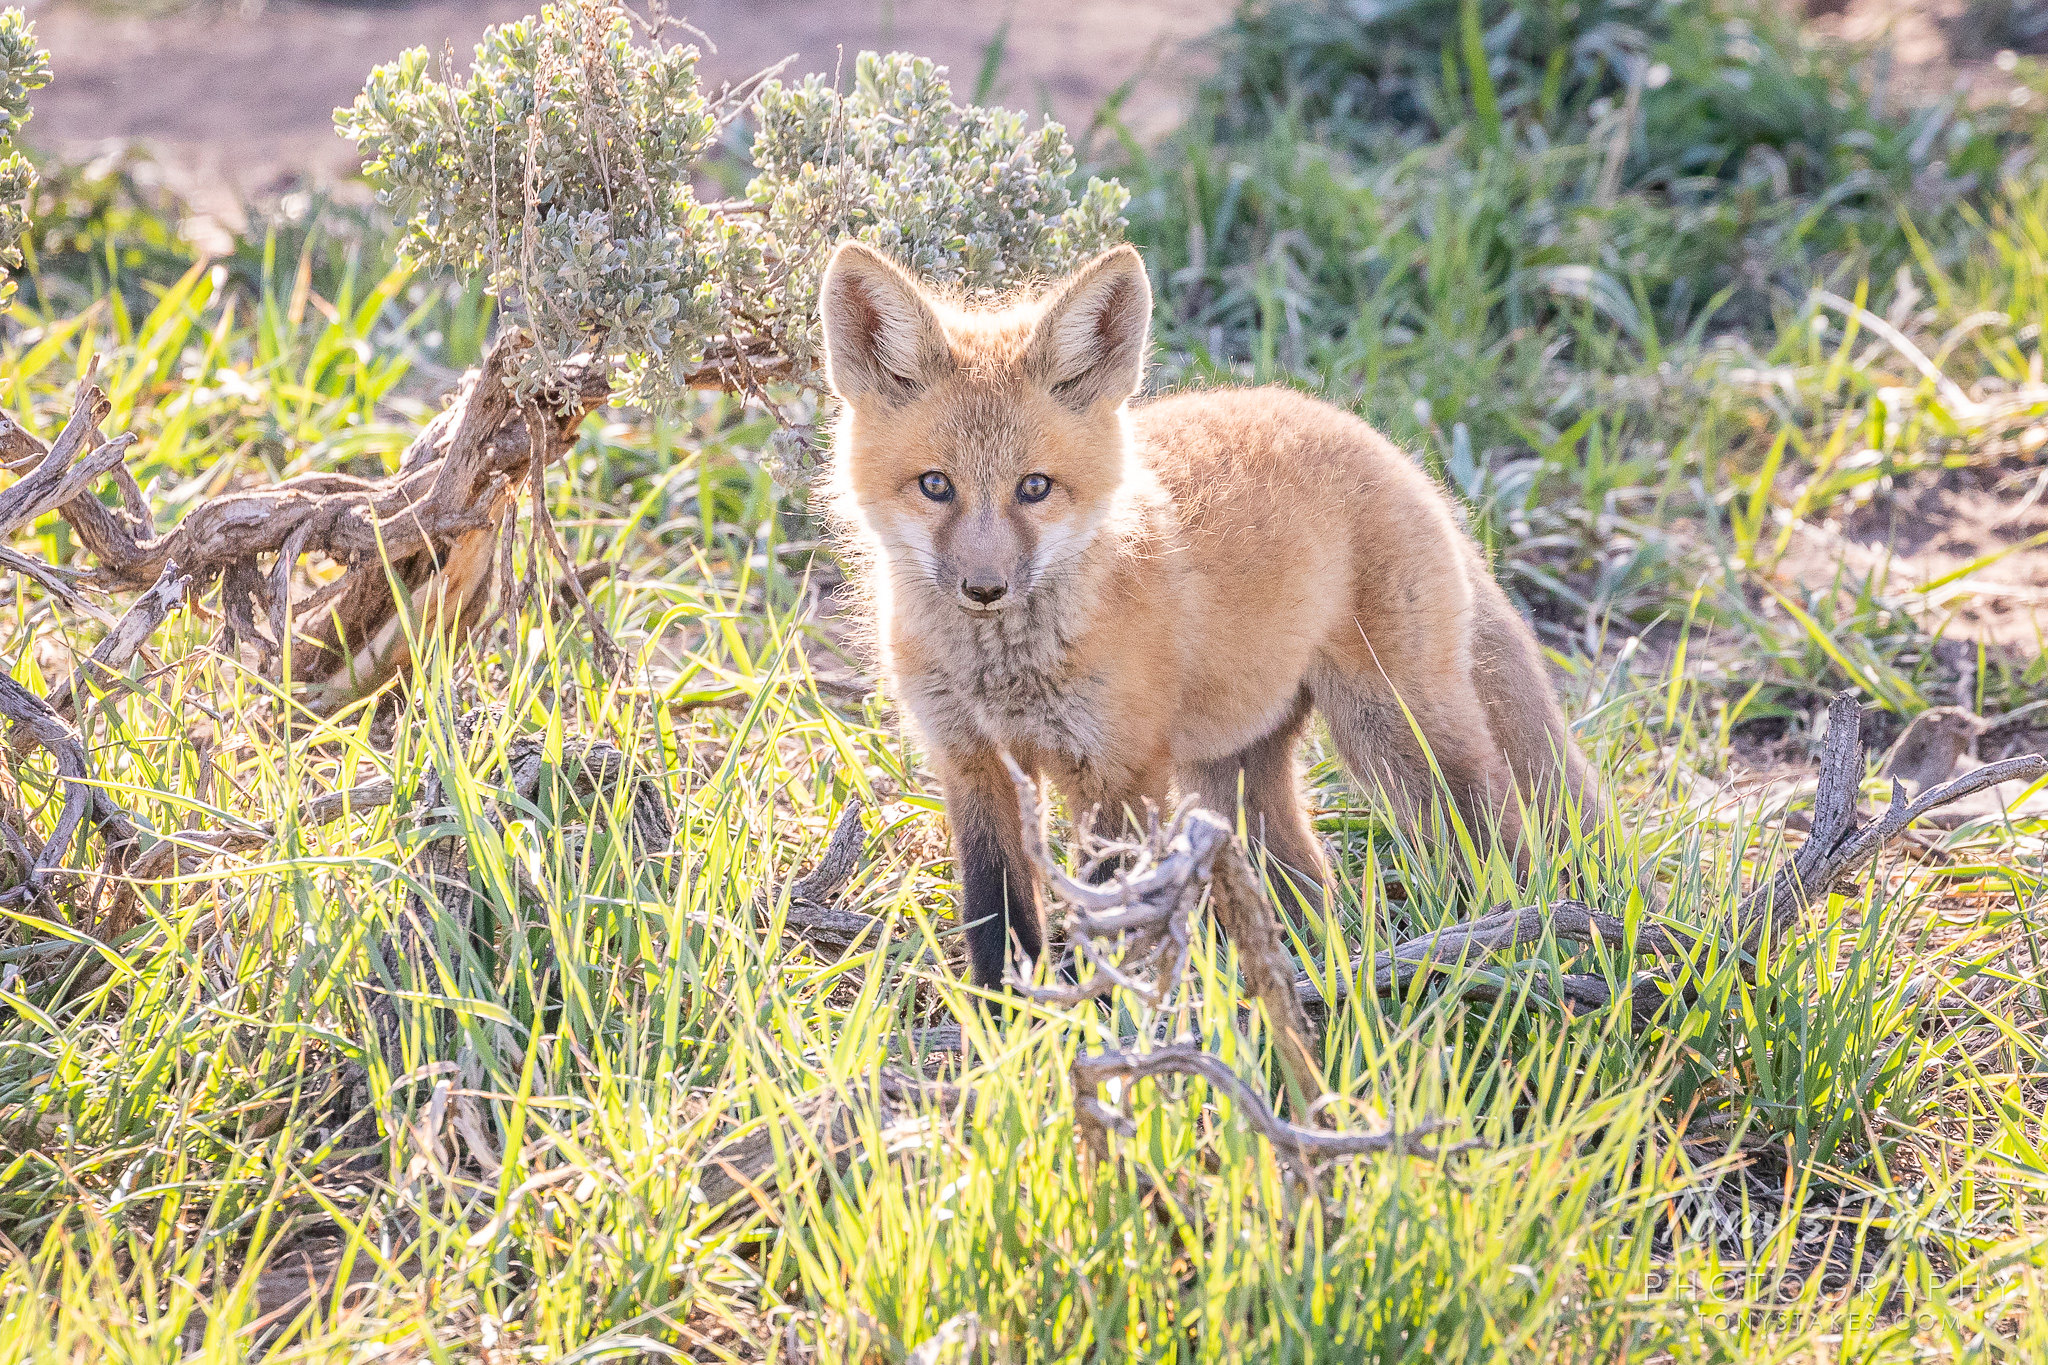 A red fox kit explores its world in the Colorado high country. (© Tony's Takes)